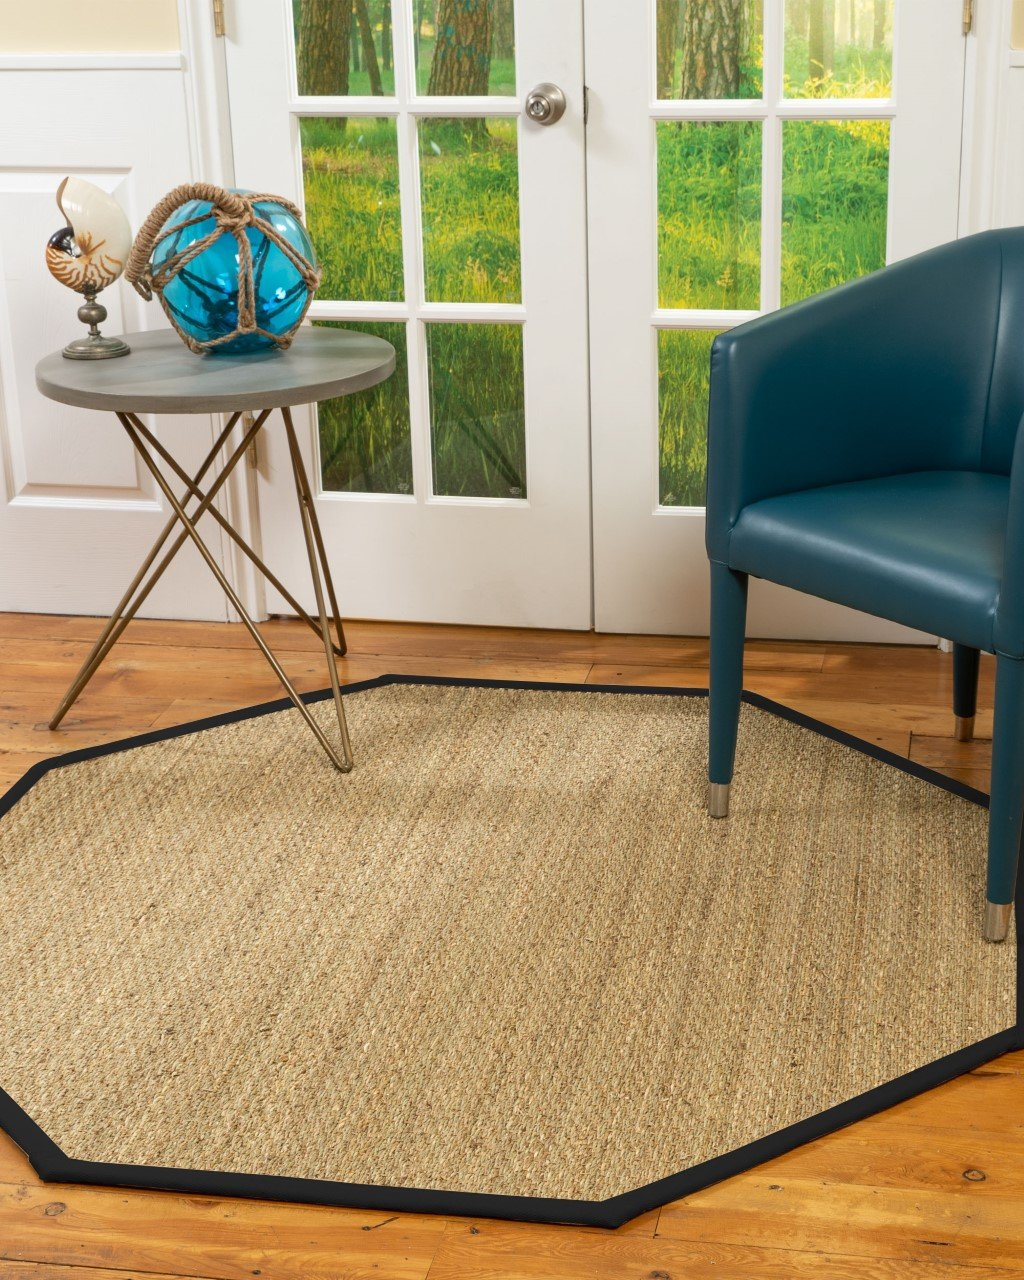 Mayfair Seagrass Rug w/ Extra Wide Black Border, 8' Octagon Product Image